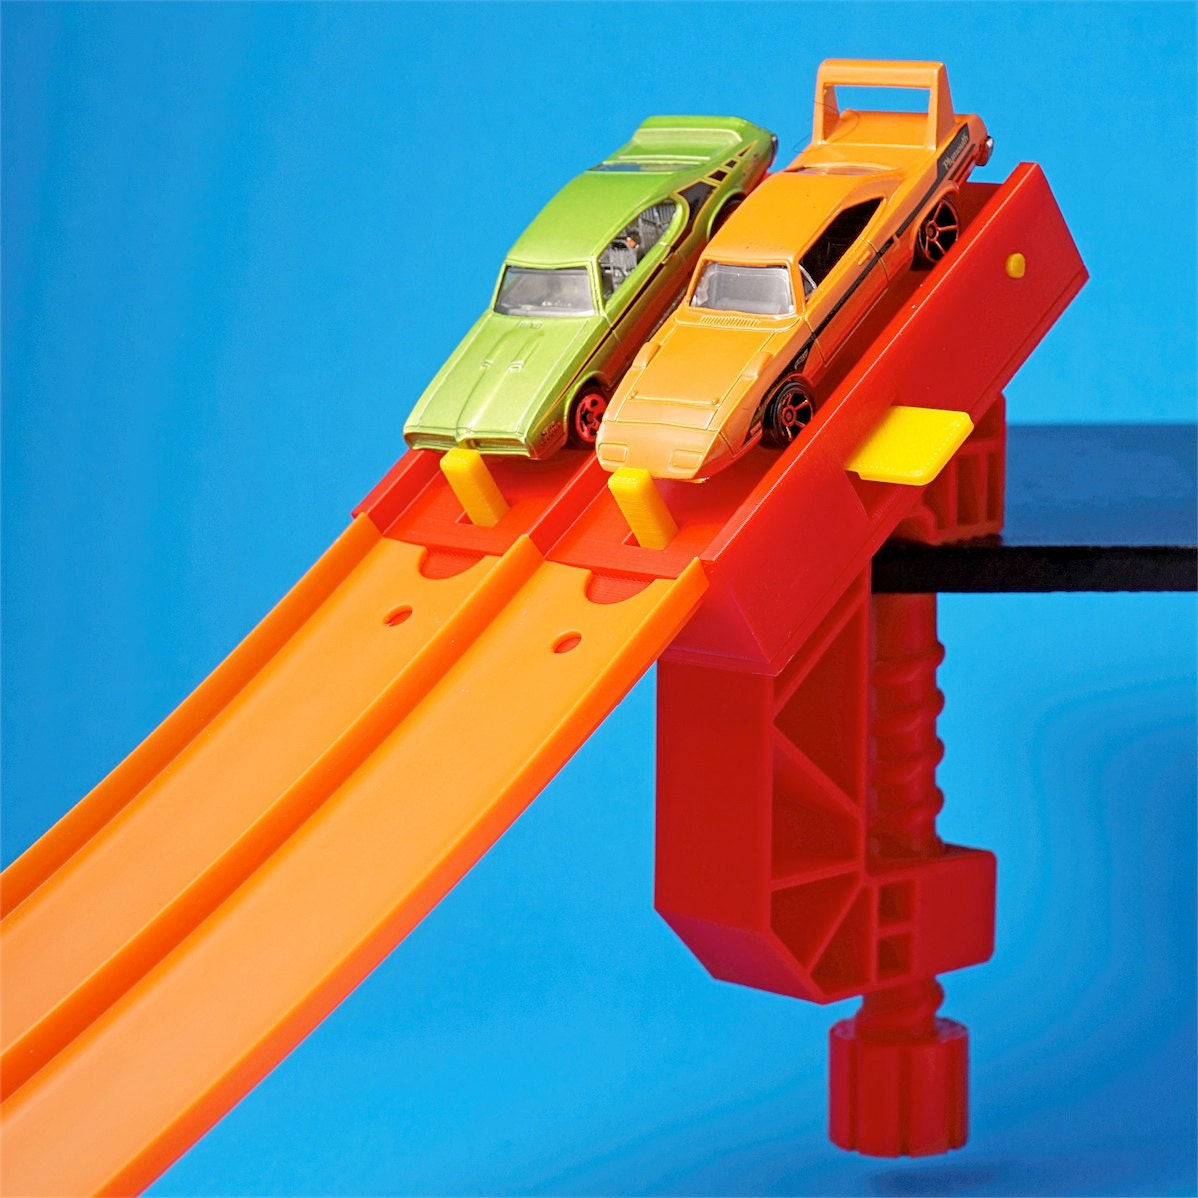 Car Wont Start When It Gets Hot Page1: 2-Lane Start Gate W/Clamp For Hot Wheels Toy Cars & Track